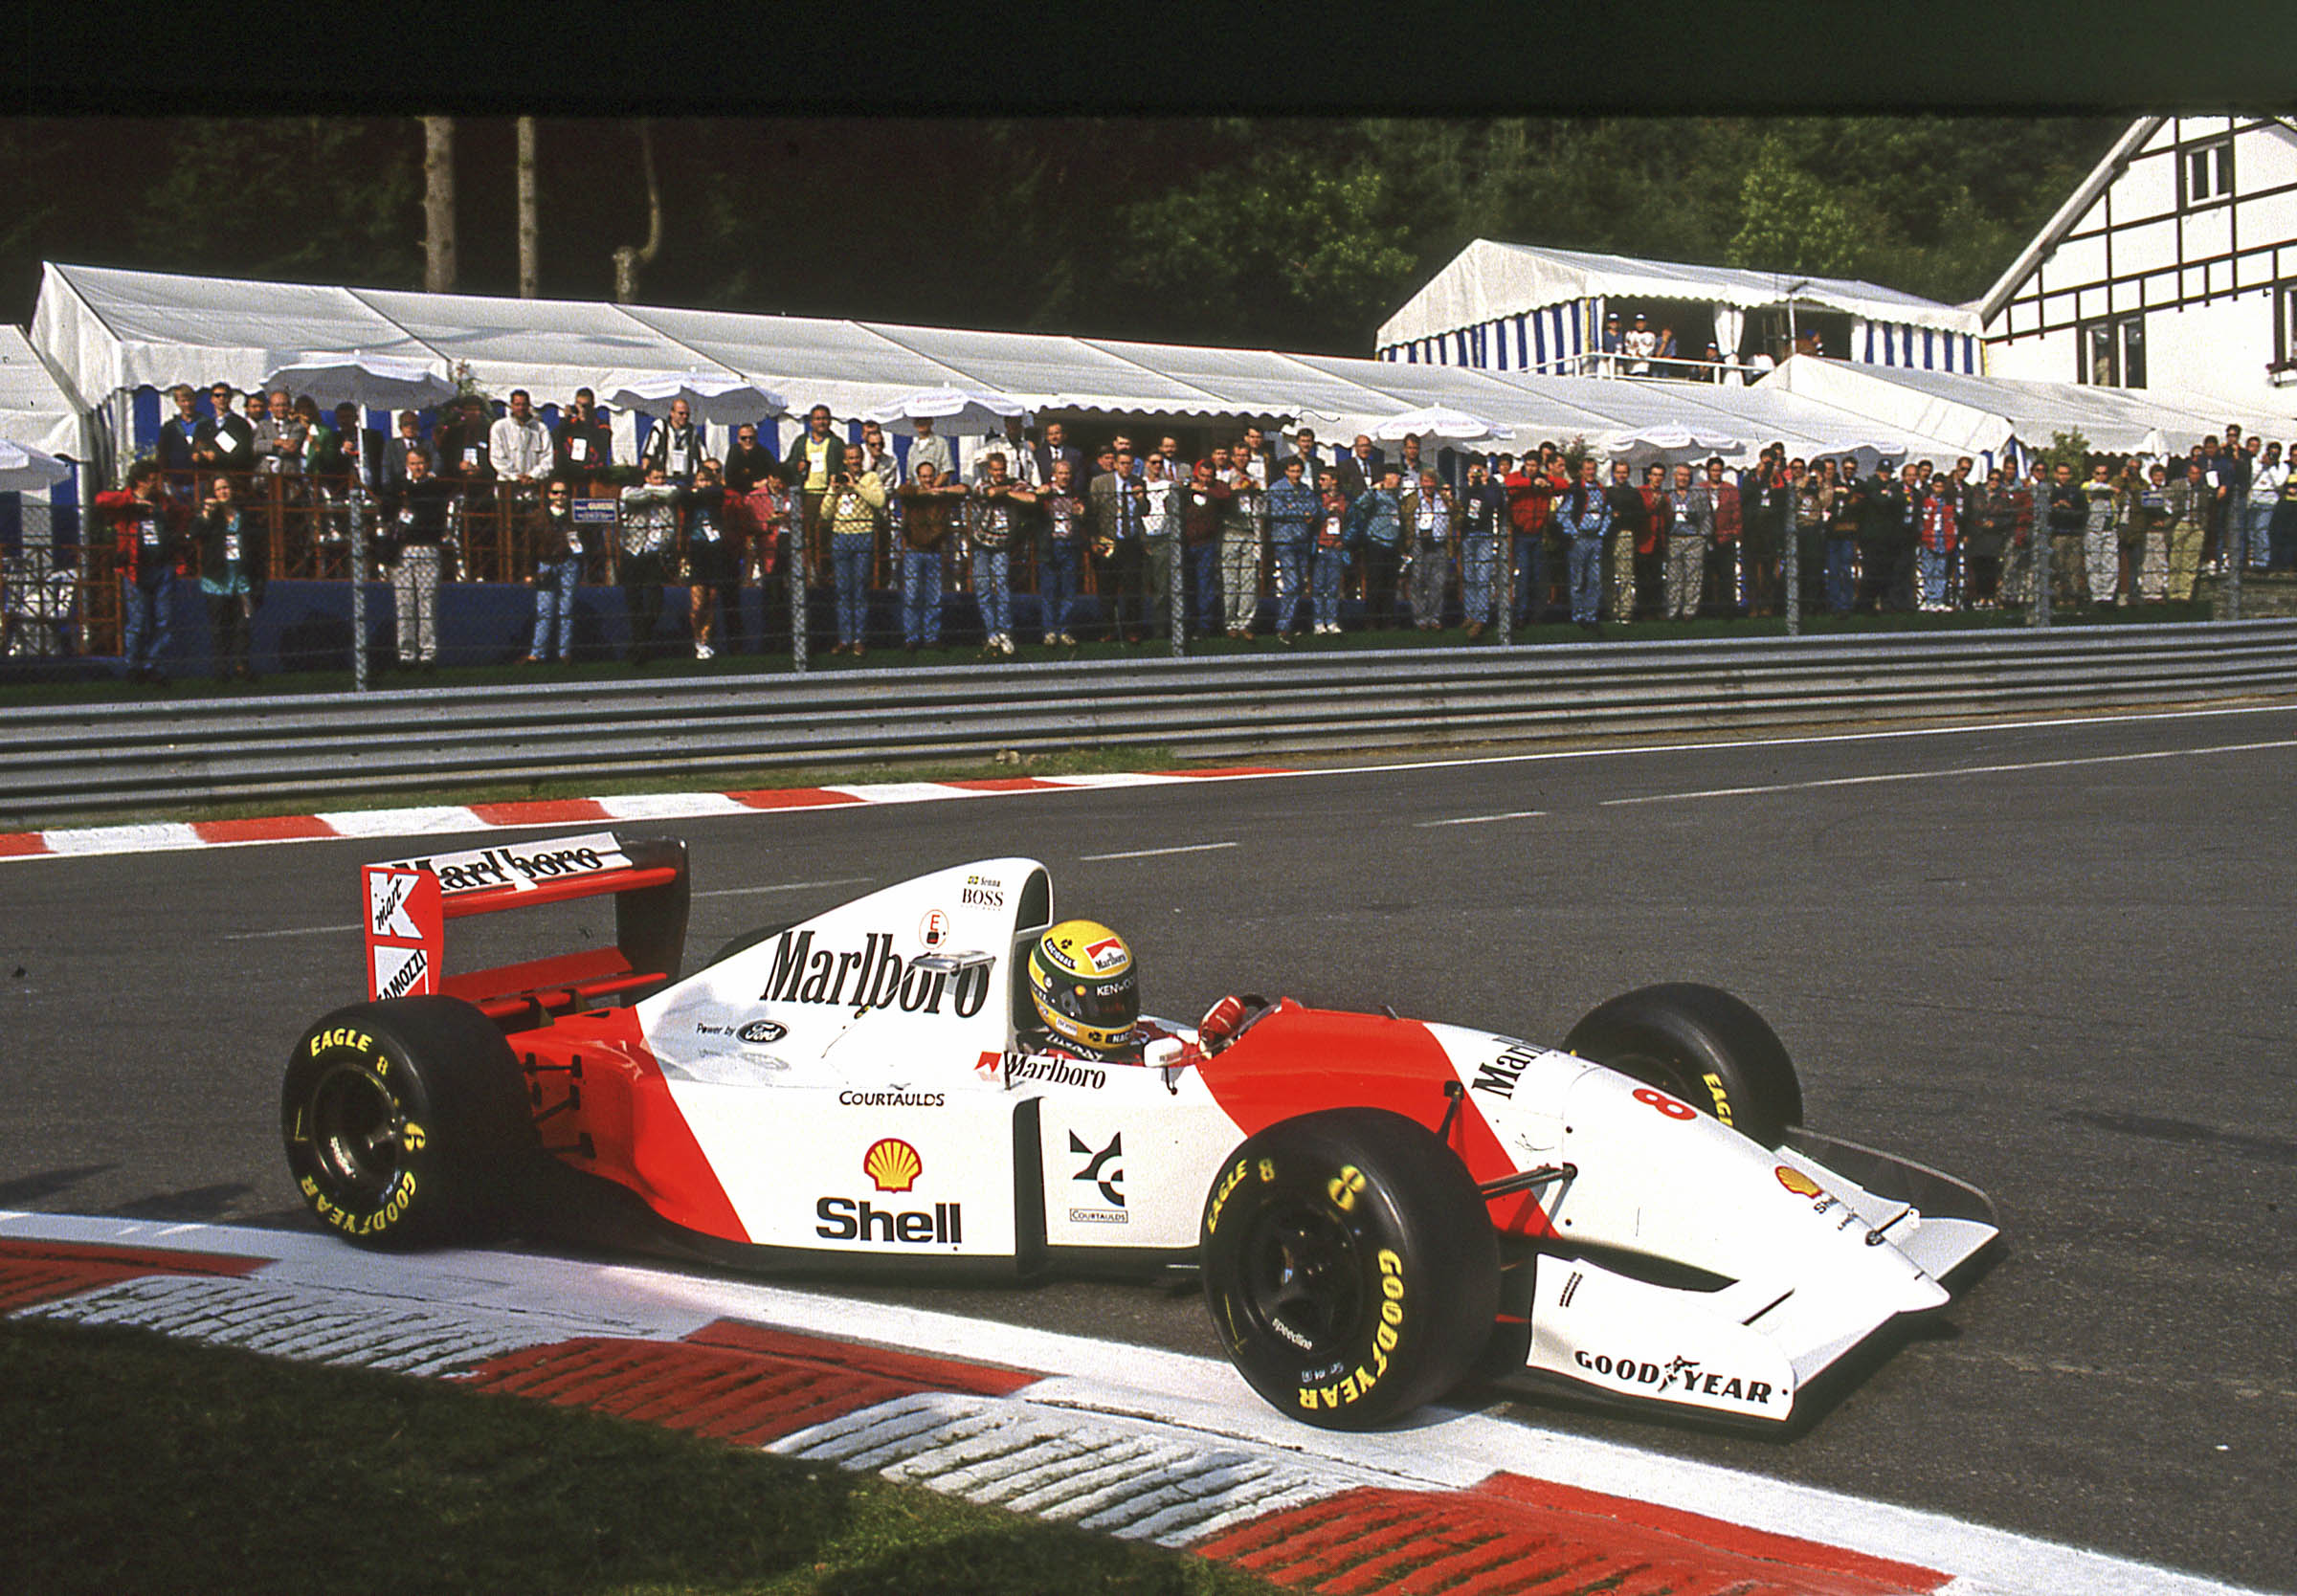 1993 McLaren MP4/8A Chassis no. 6 racing